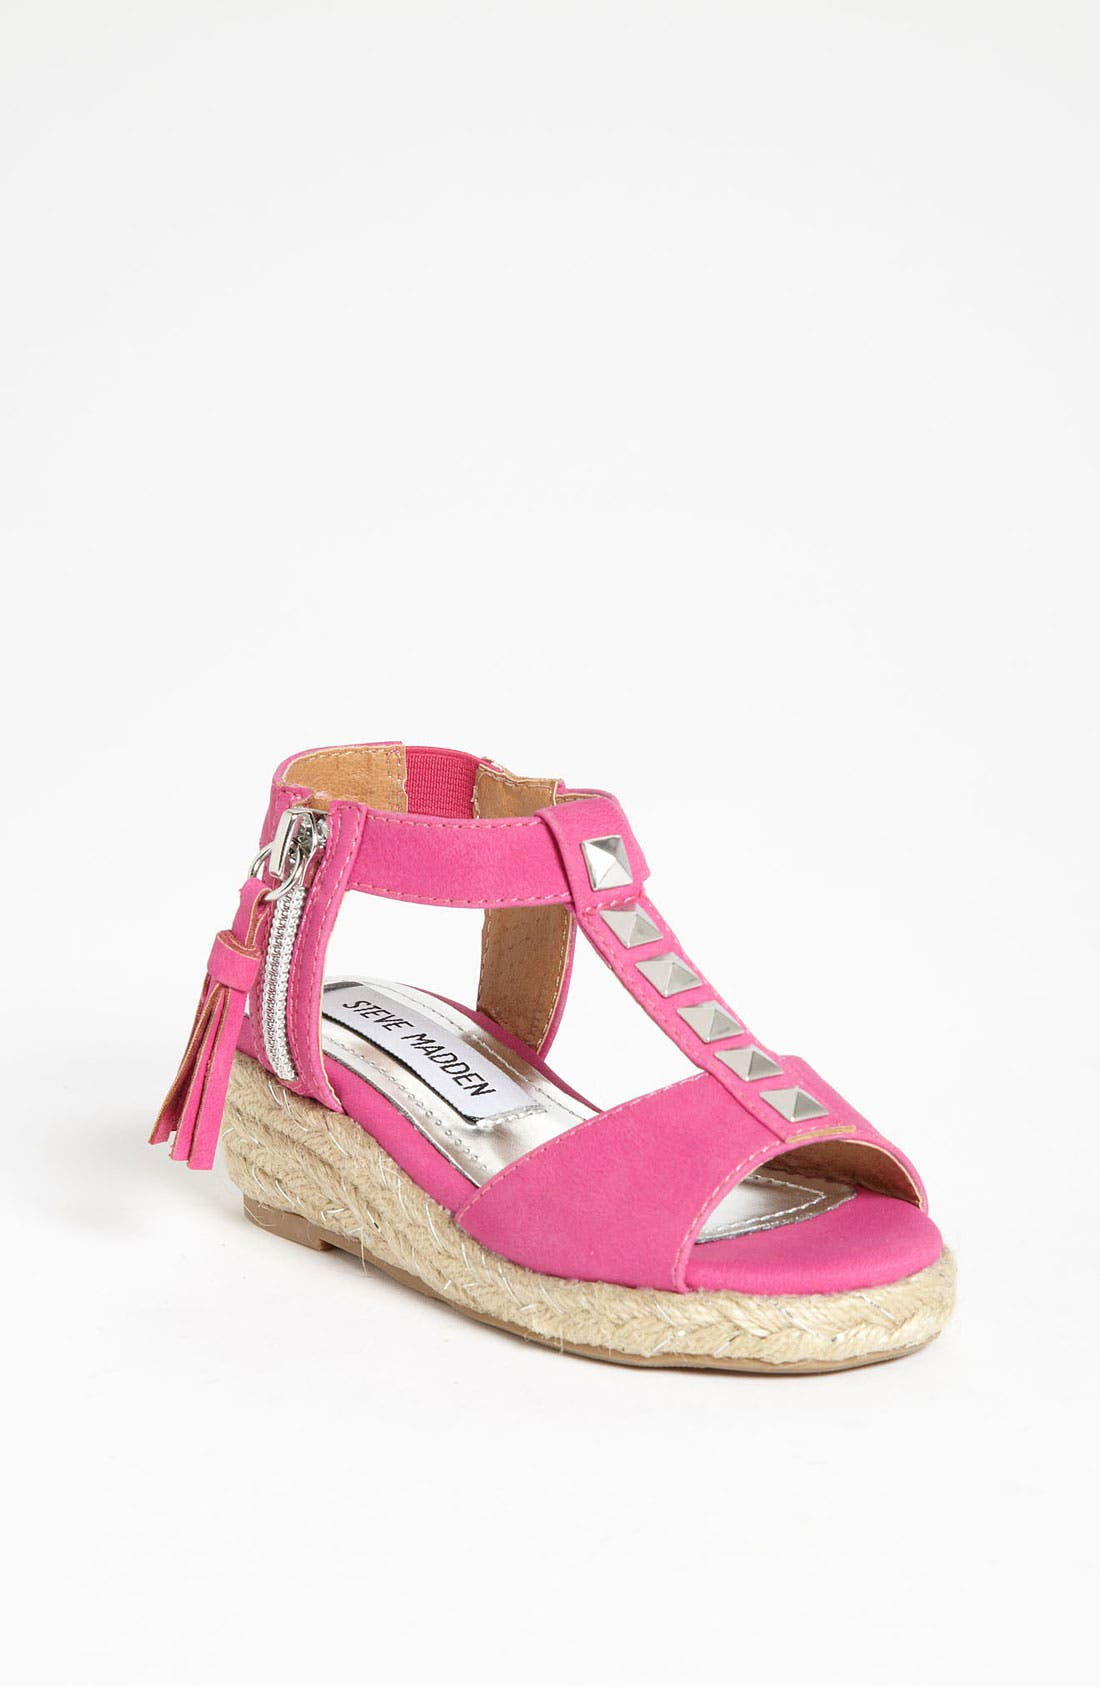 Alternate Image 1 Selected - Steve Madden 'Camile' Wedge (Toddler, Little Kid & Big Kid)